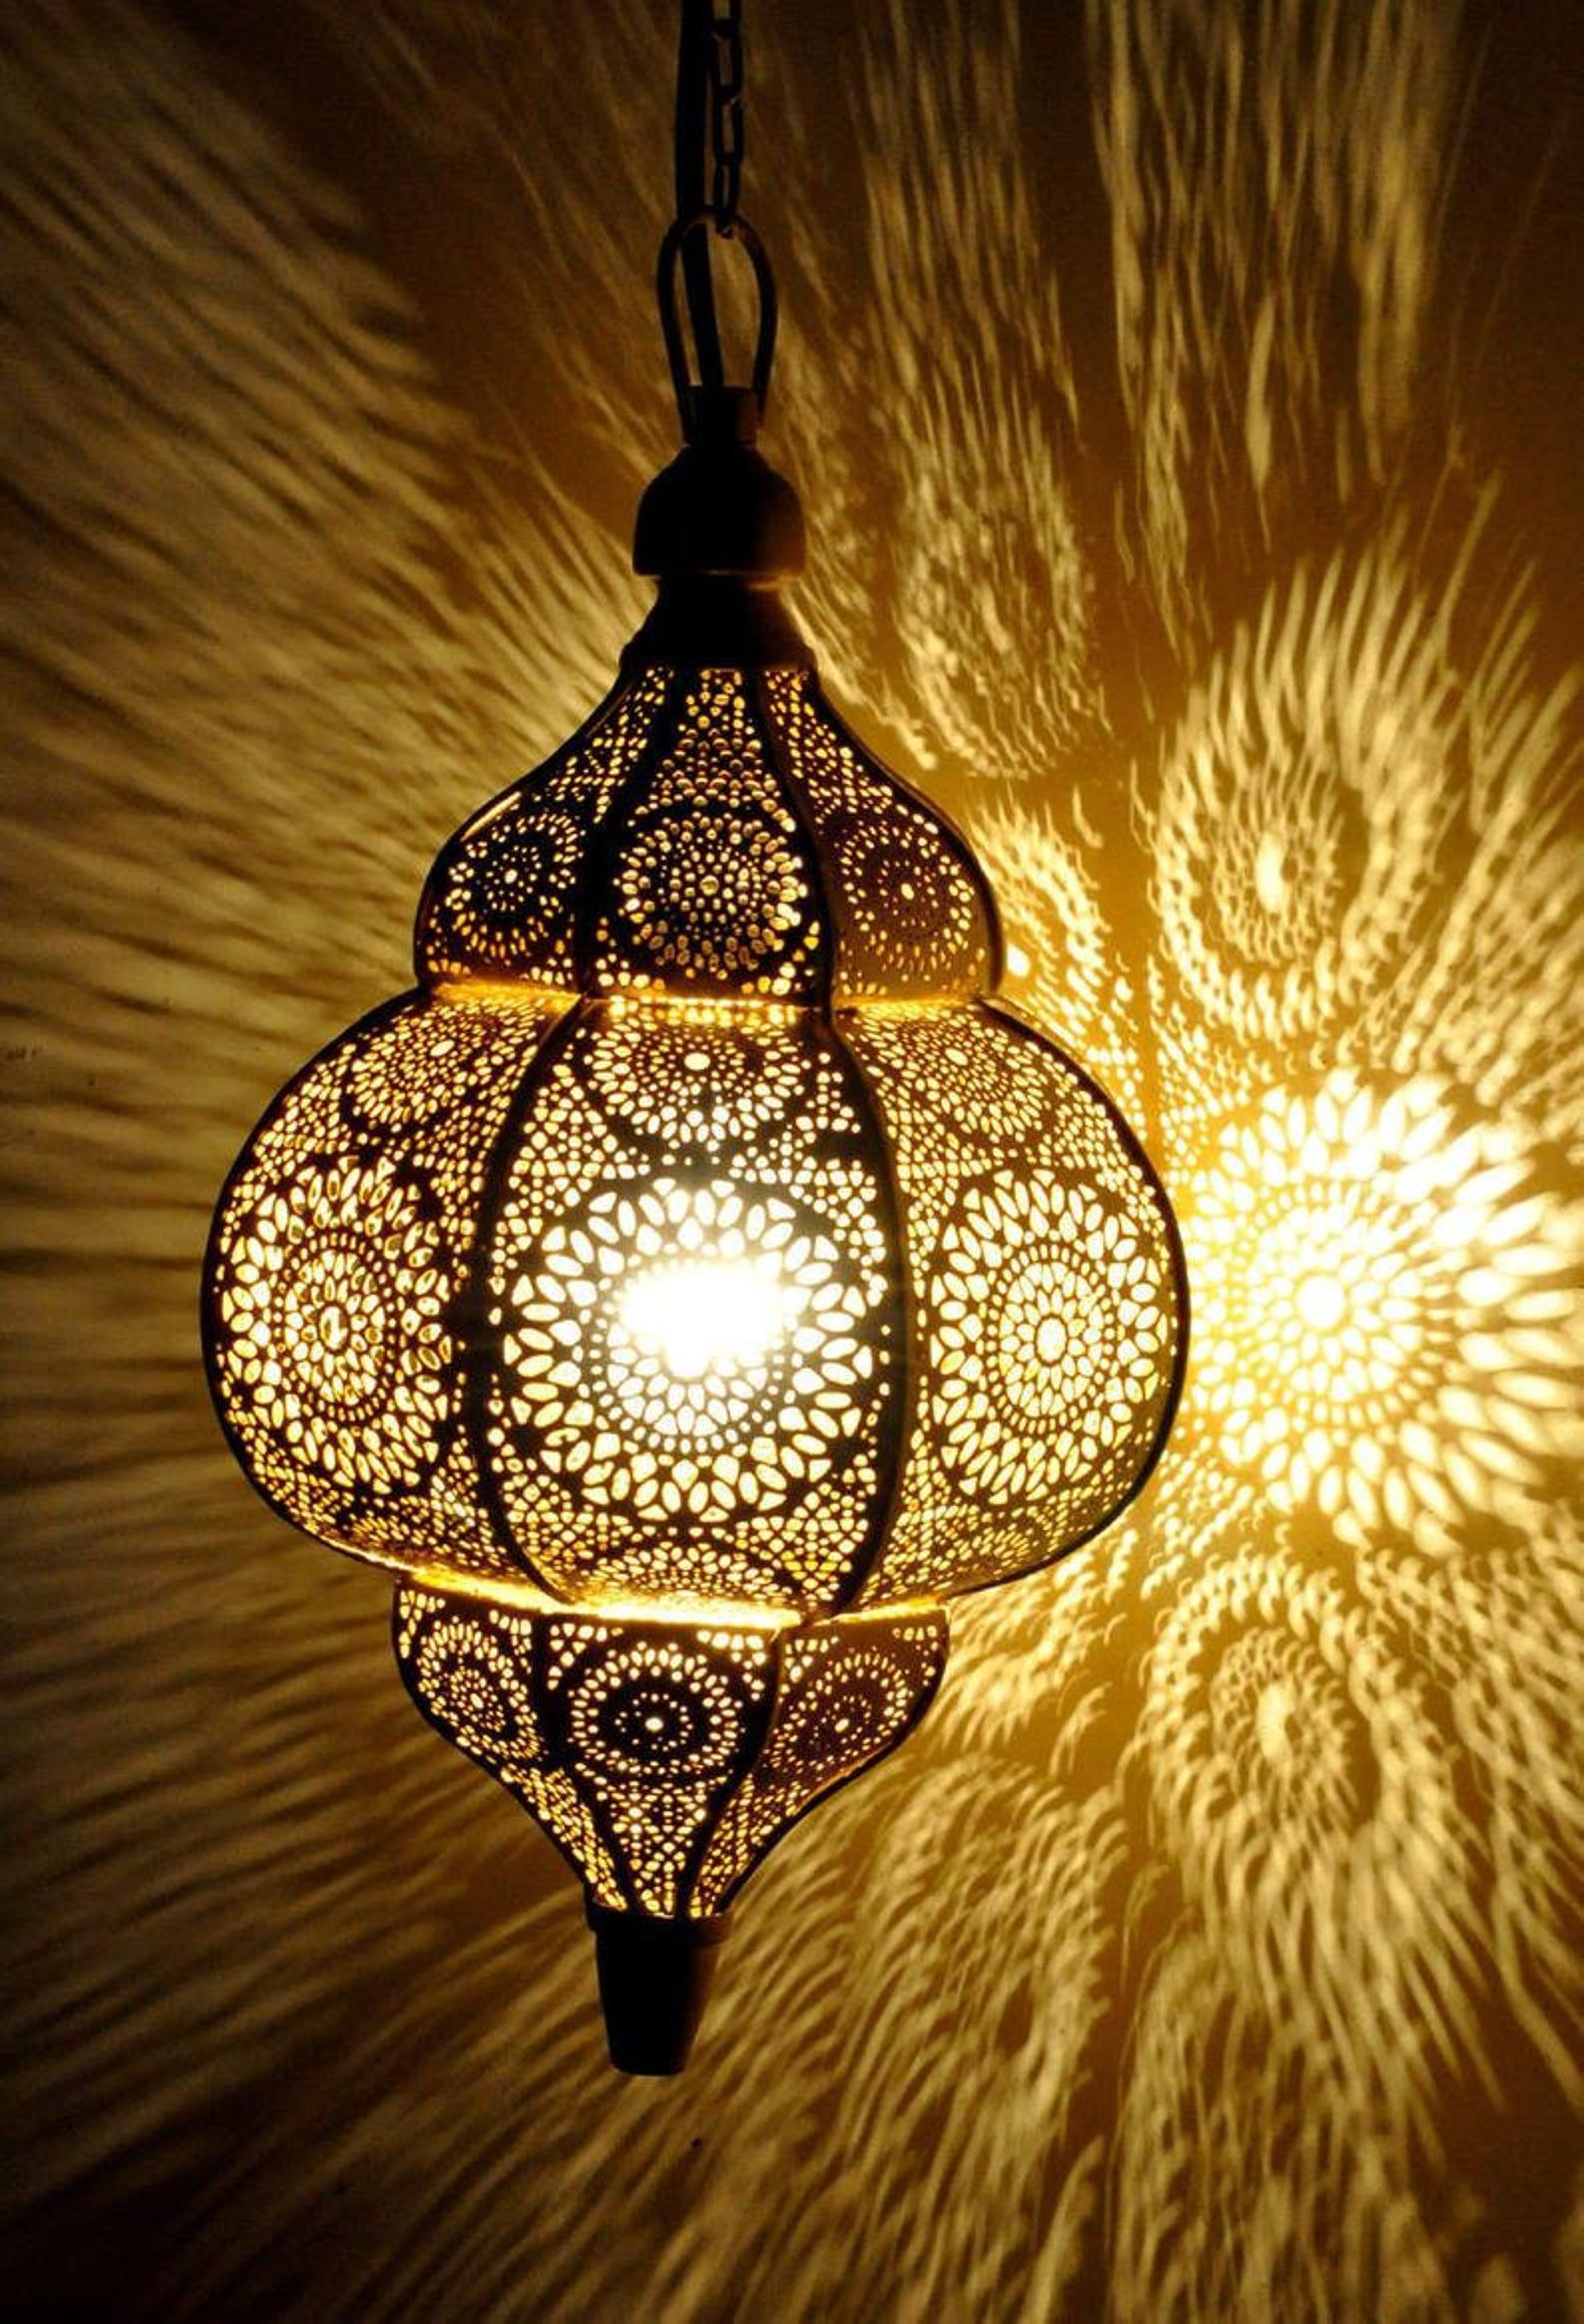 8x14 Moroccan Lamps Antique Look Modern Turkish Hanging Etsy In 2020 Moroccan Lamp Moroccan Ceiling Light Turkish Hanging Lamp